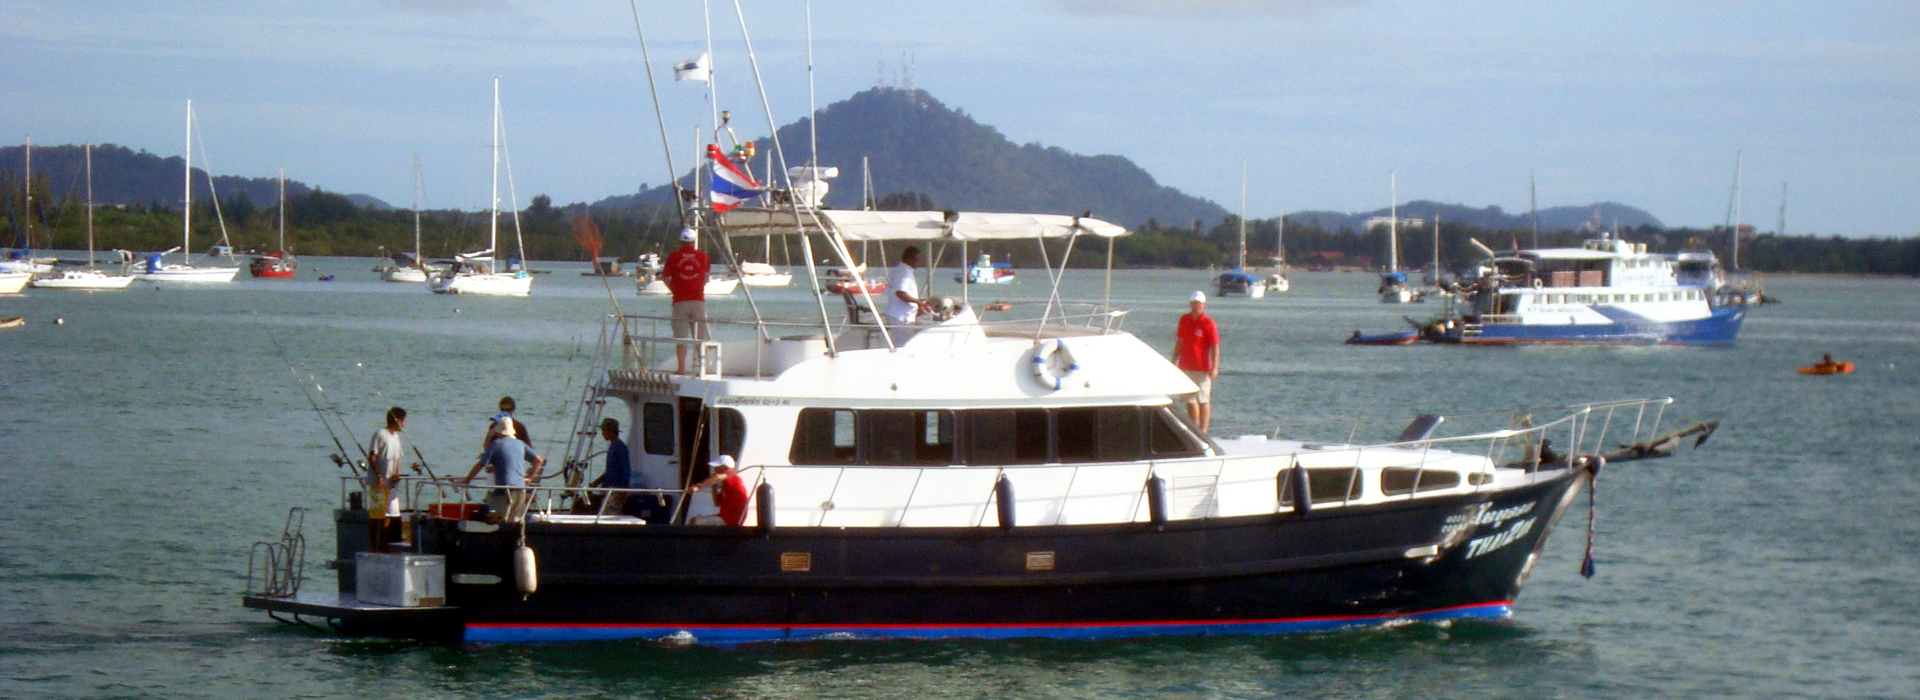 <p>Thai 2 On is a 56 ft luxury motor yacht furnished & equipped to the highest standard. A multi-day charter vessel with 3 double bedrooms, she is the ideal boat for visiting the Similan Islands. </p>